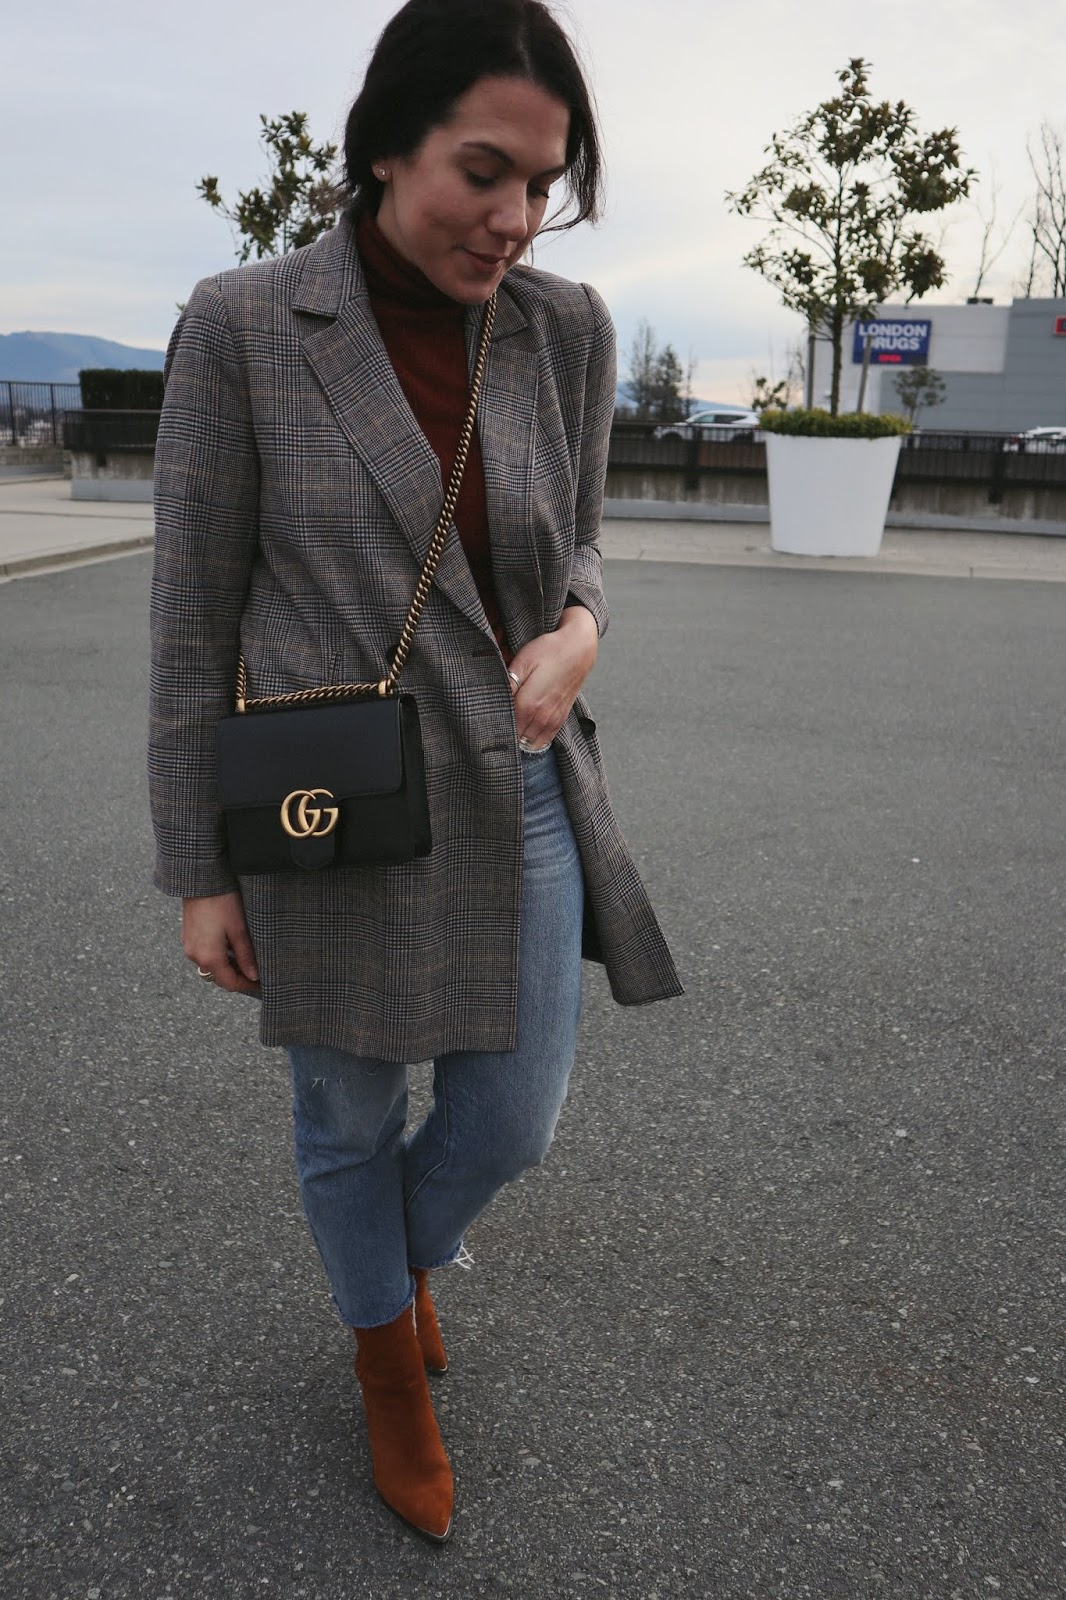 plaid blazer outfit zara levis wedgie jeans jonak suede boots vancouver fashion blogger